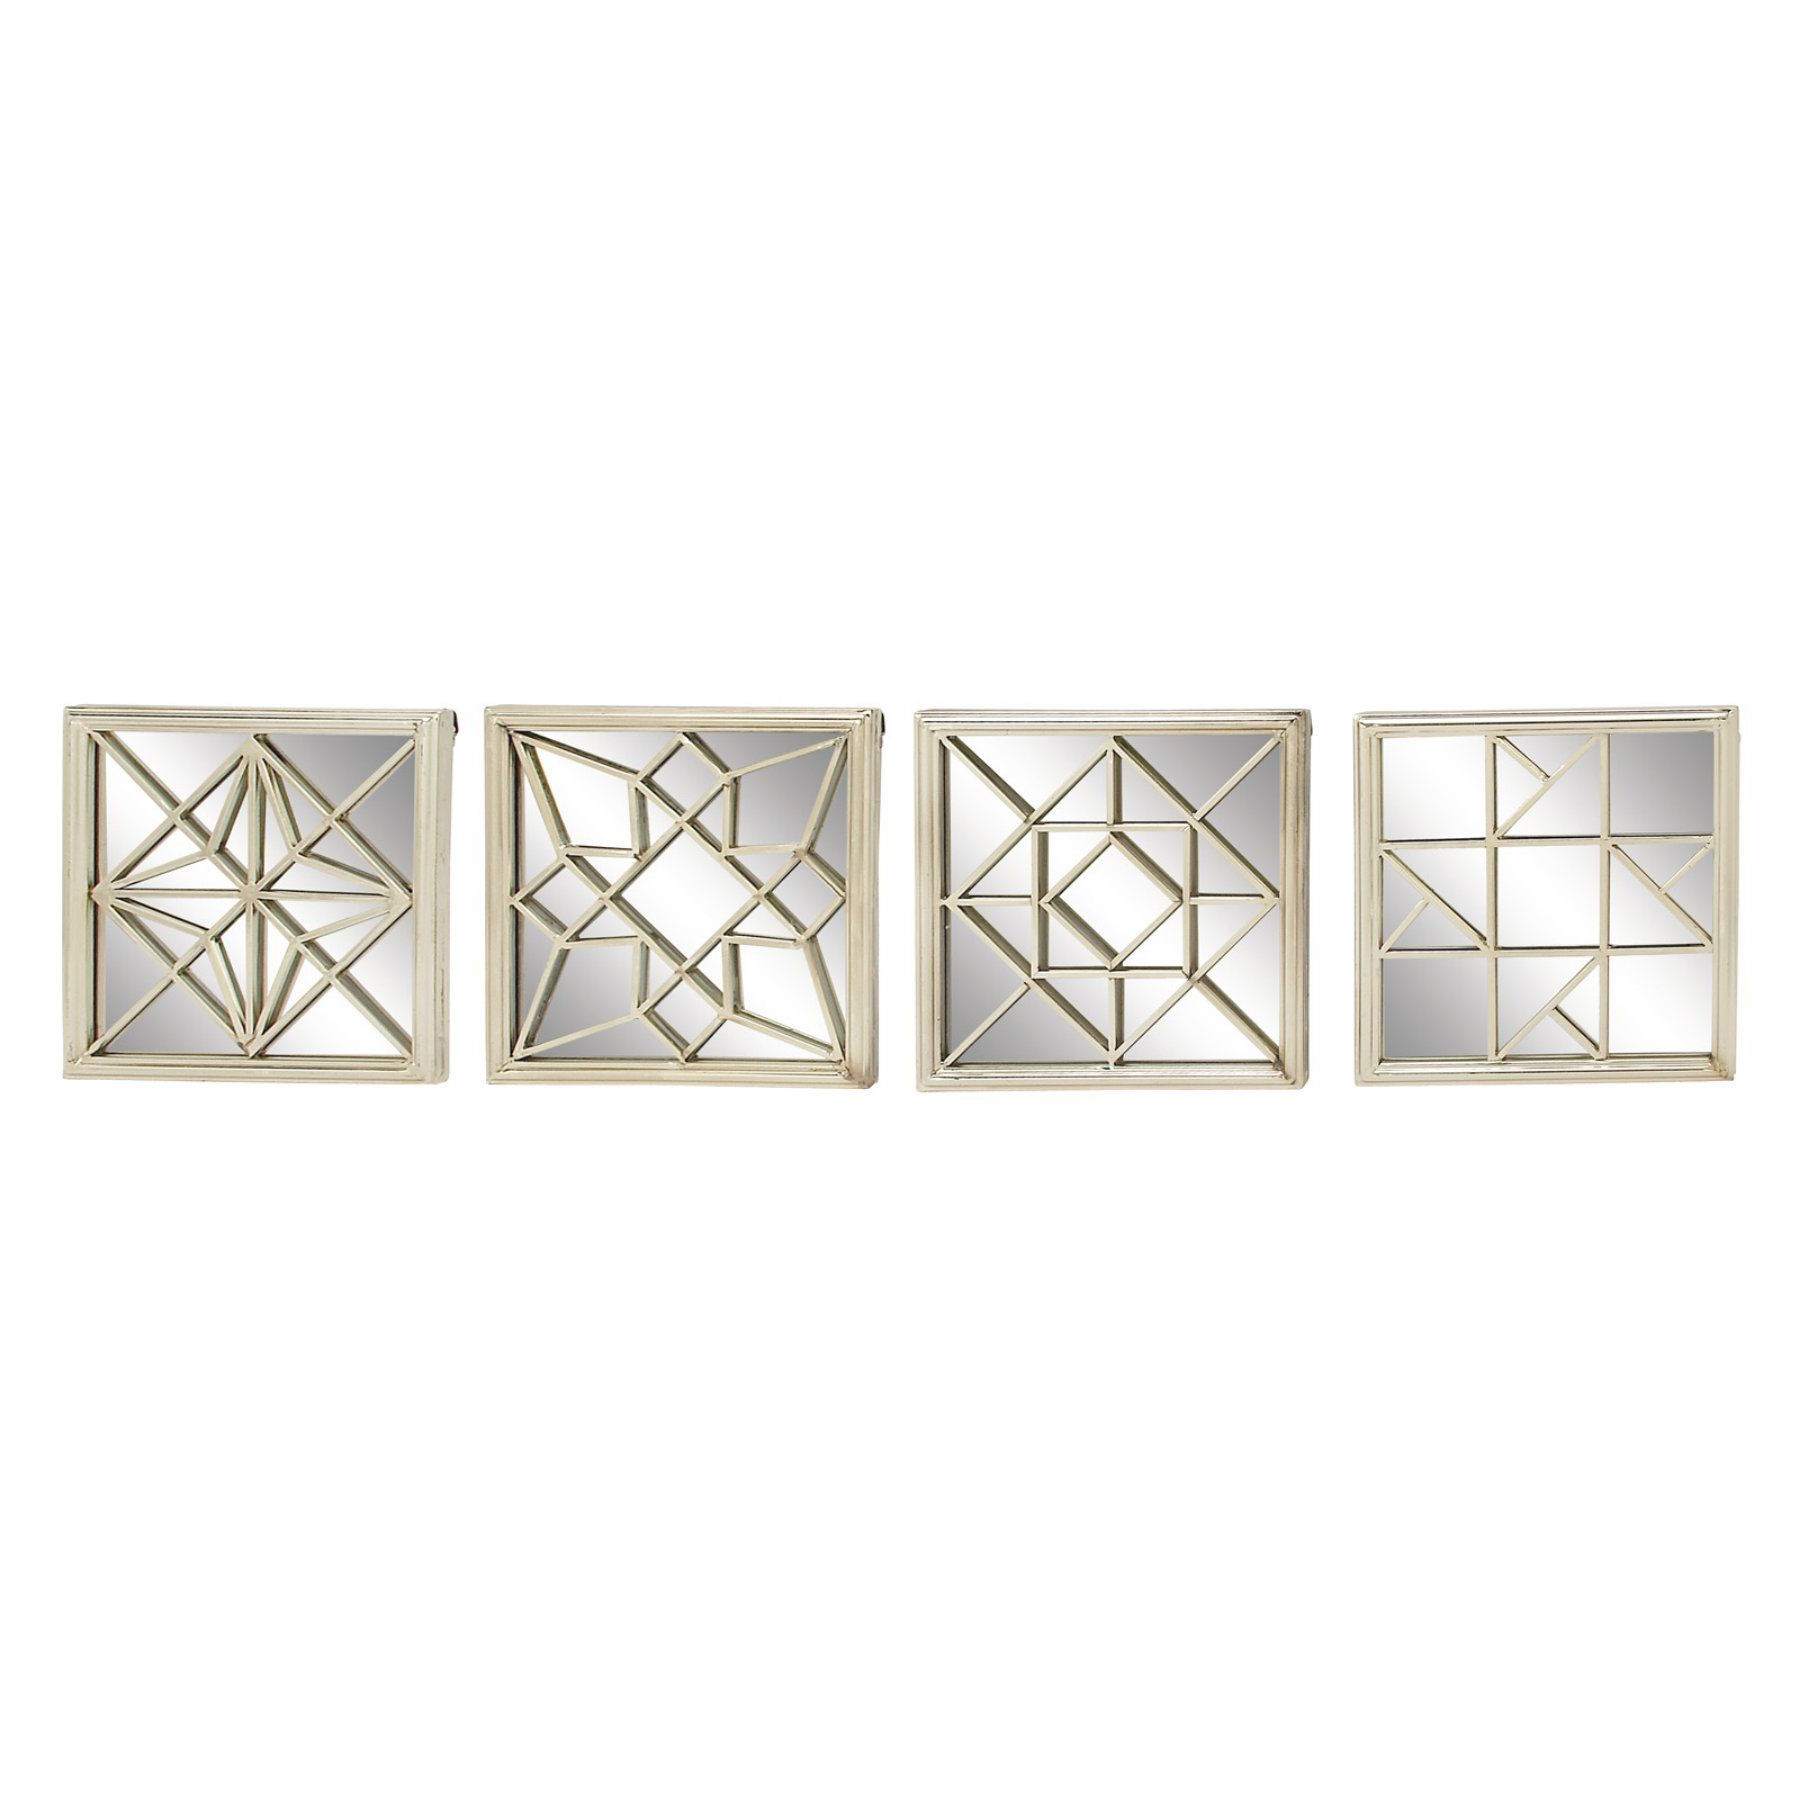 Newest Decmode Modern Reflection Geometric Wall Mirrors – Set Of 4 Within Reflection Wall Mirrors (View 12 of 20)